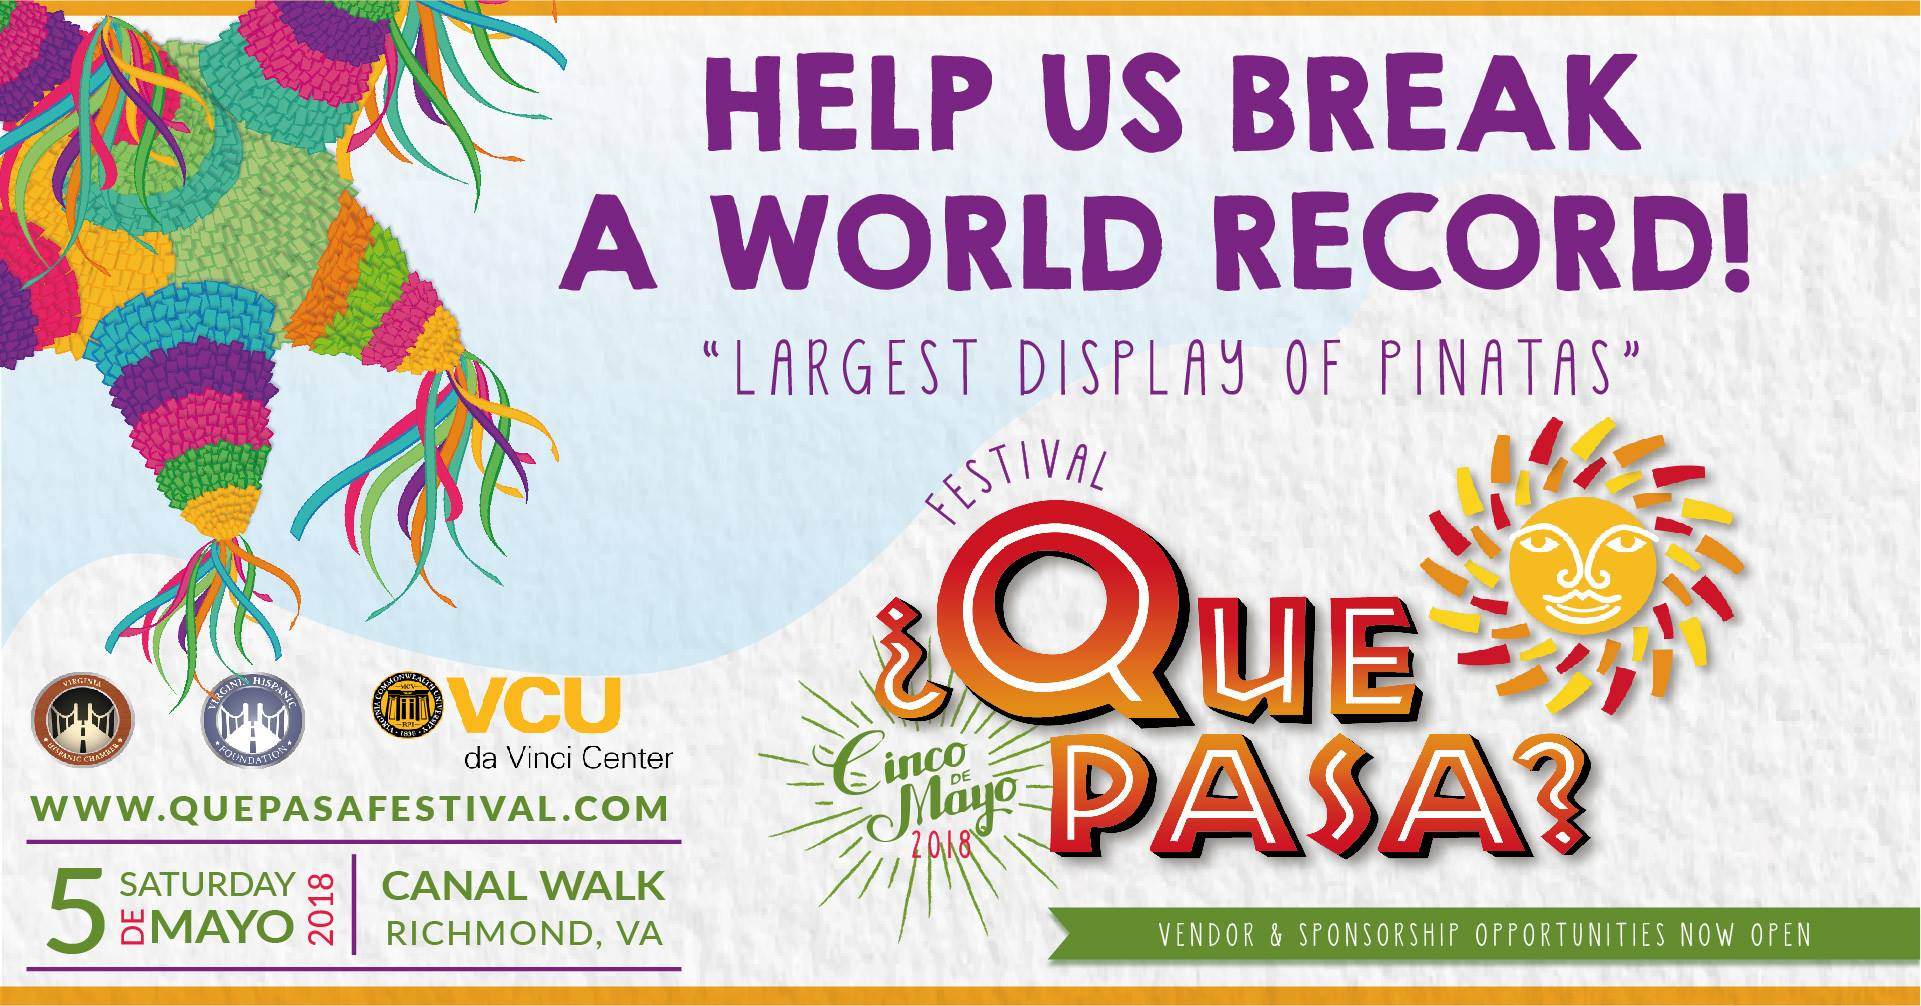 ¿Qué Pasa? Festival - May 2020 (TBD)Canal Walk, Downtown RVA